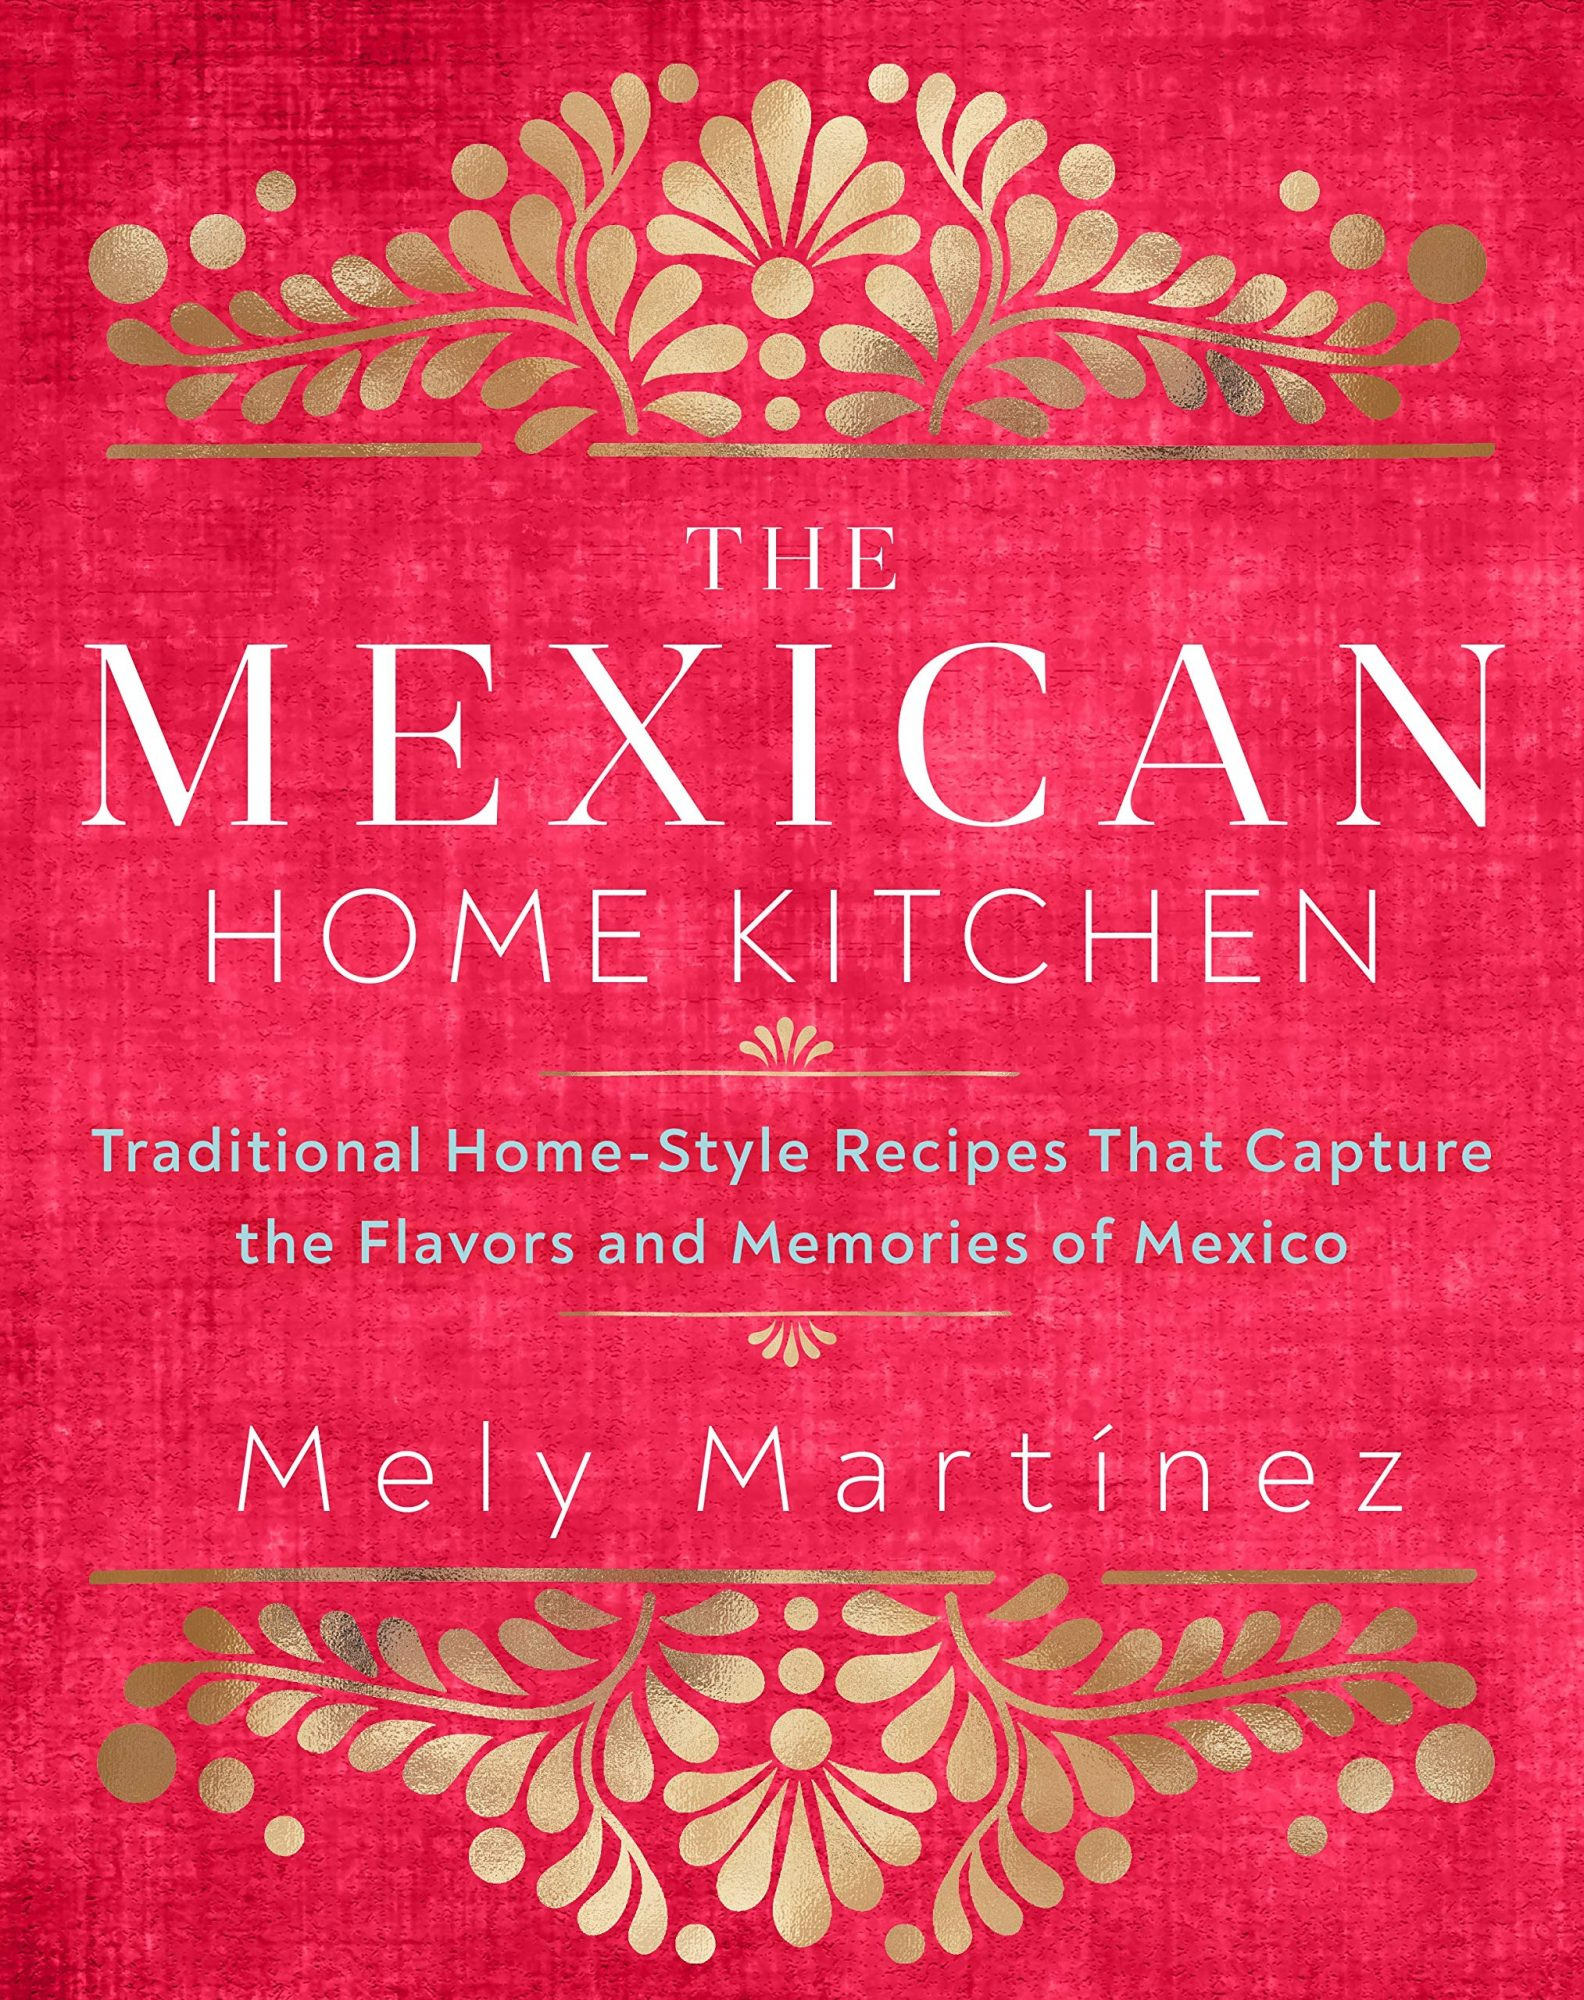 book cover for The Mexican Home Kitchen: Traditional Home-Style Recipes That Capture the Flavors and Memories of Mexico